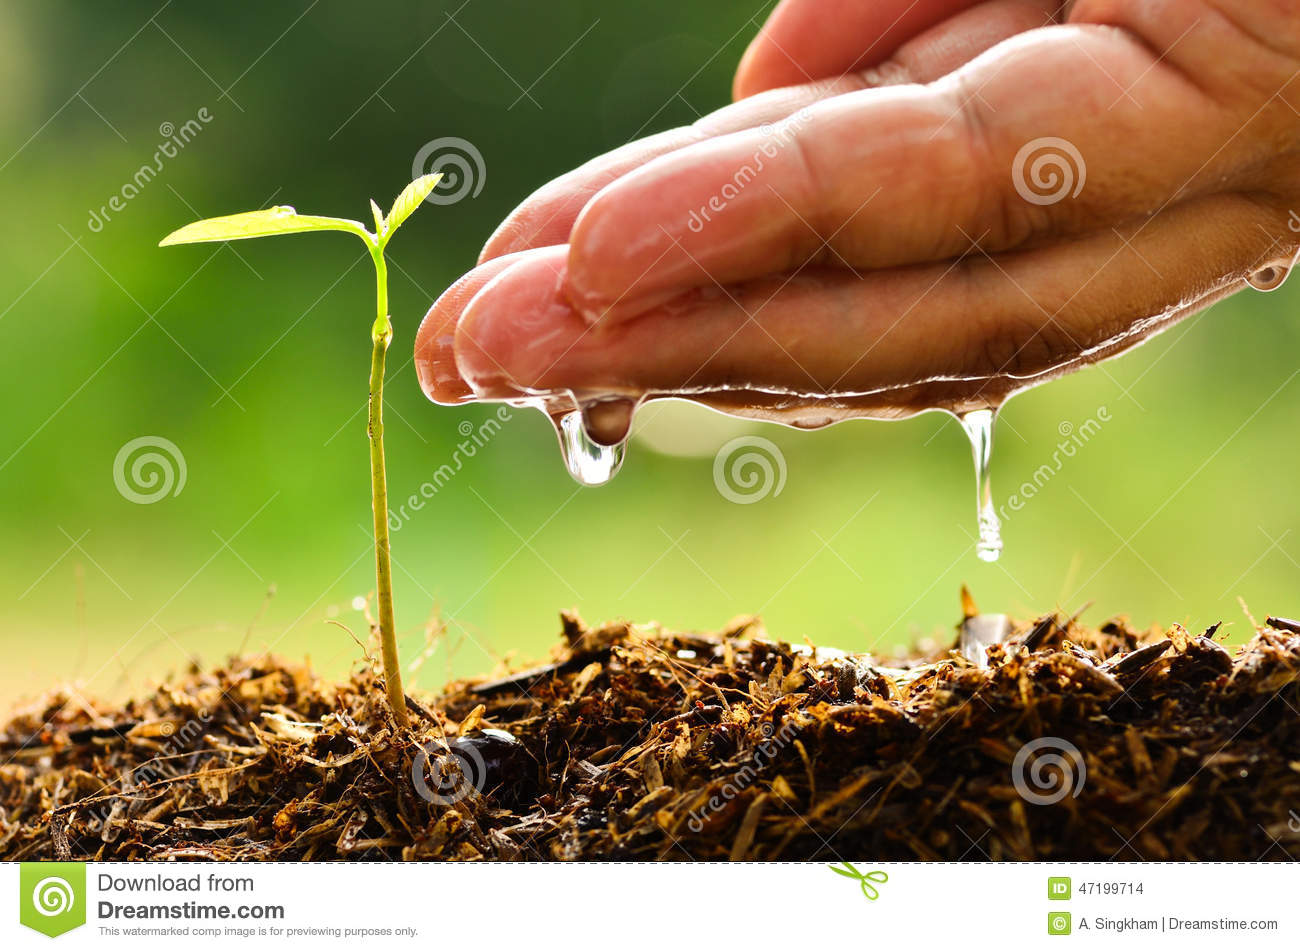 Seeding, Seedling, Male hand watering young tree